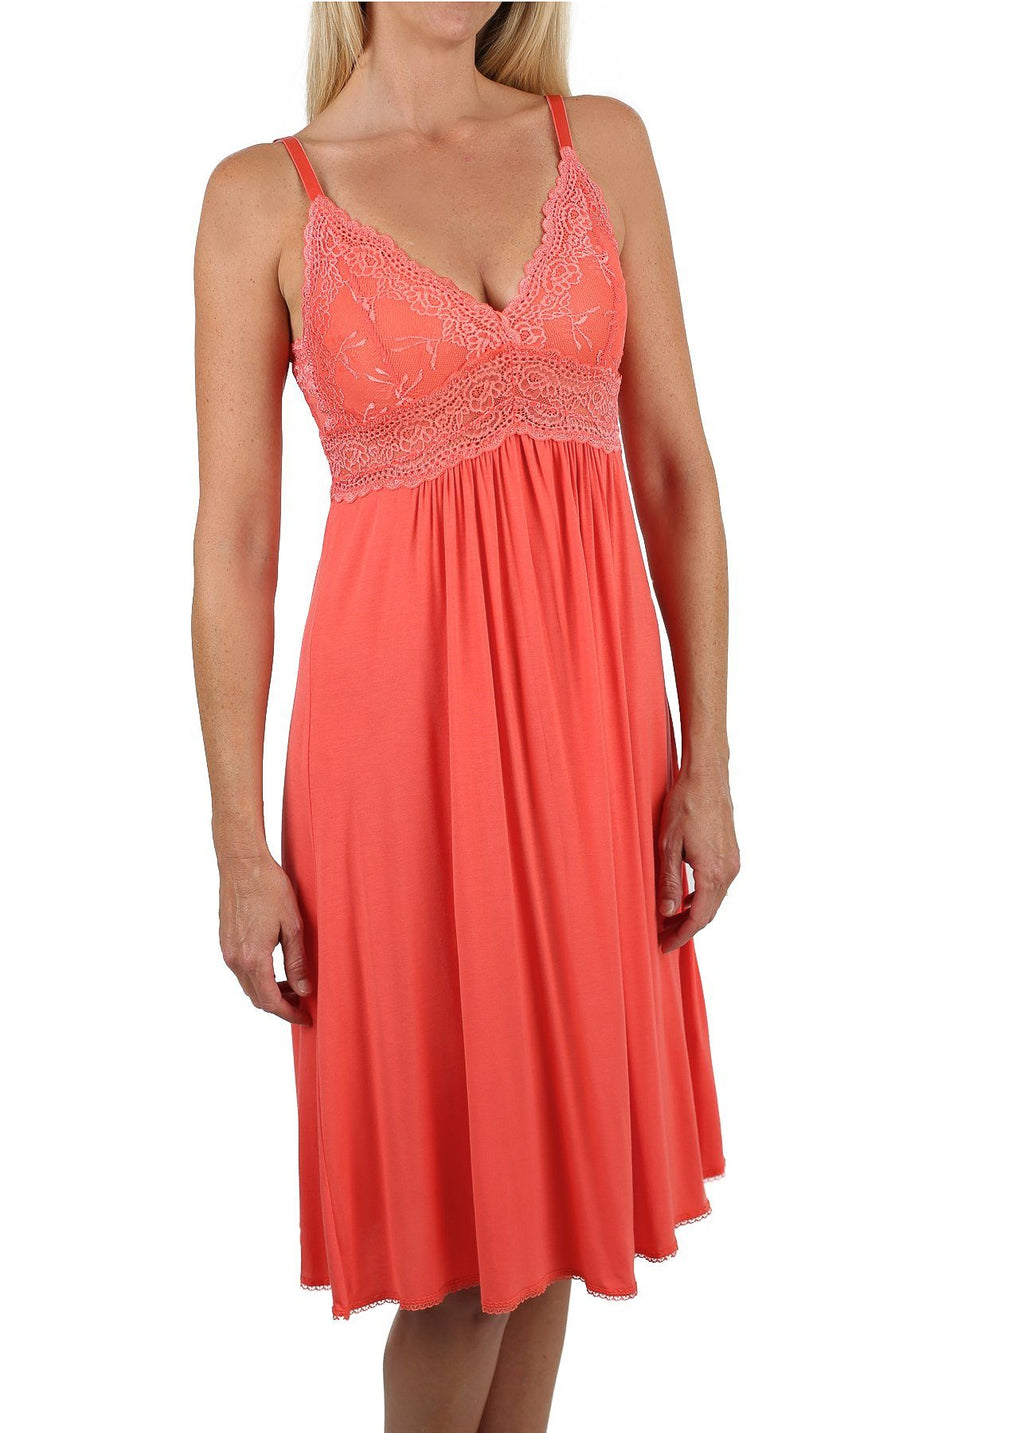 Bliss Nightgown - Persimmon Mystique Intimates